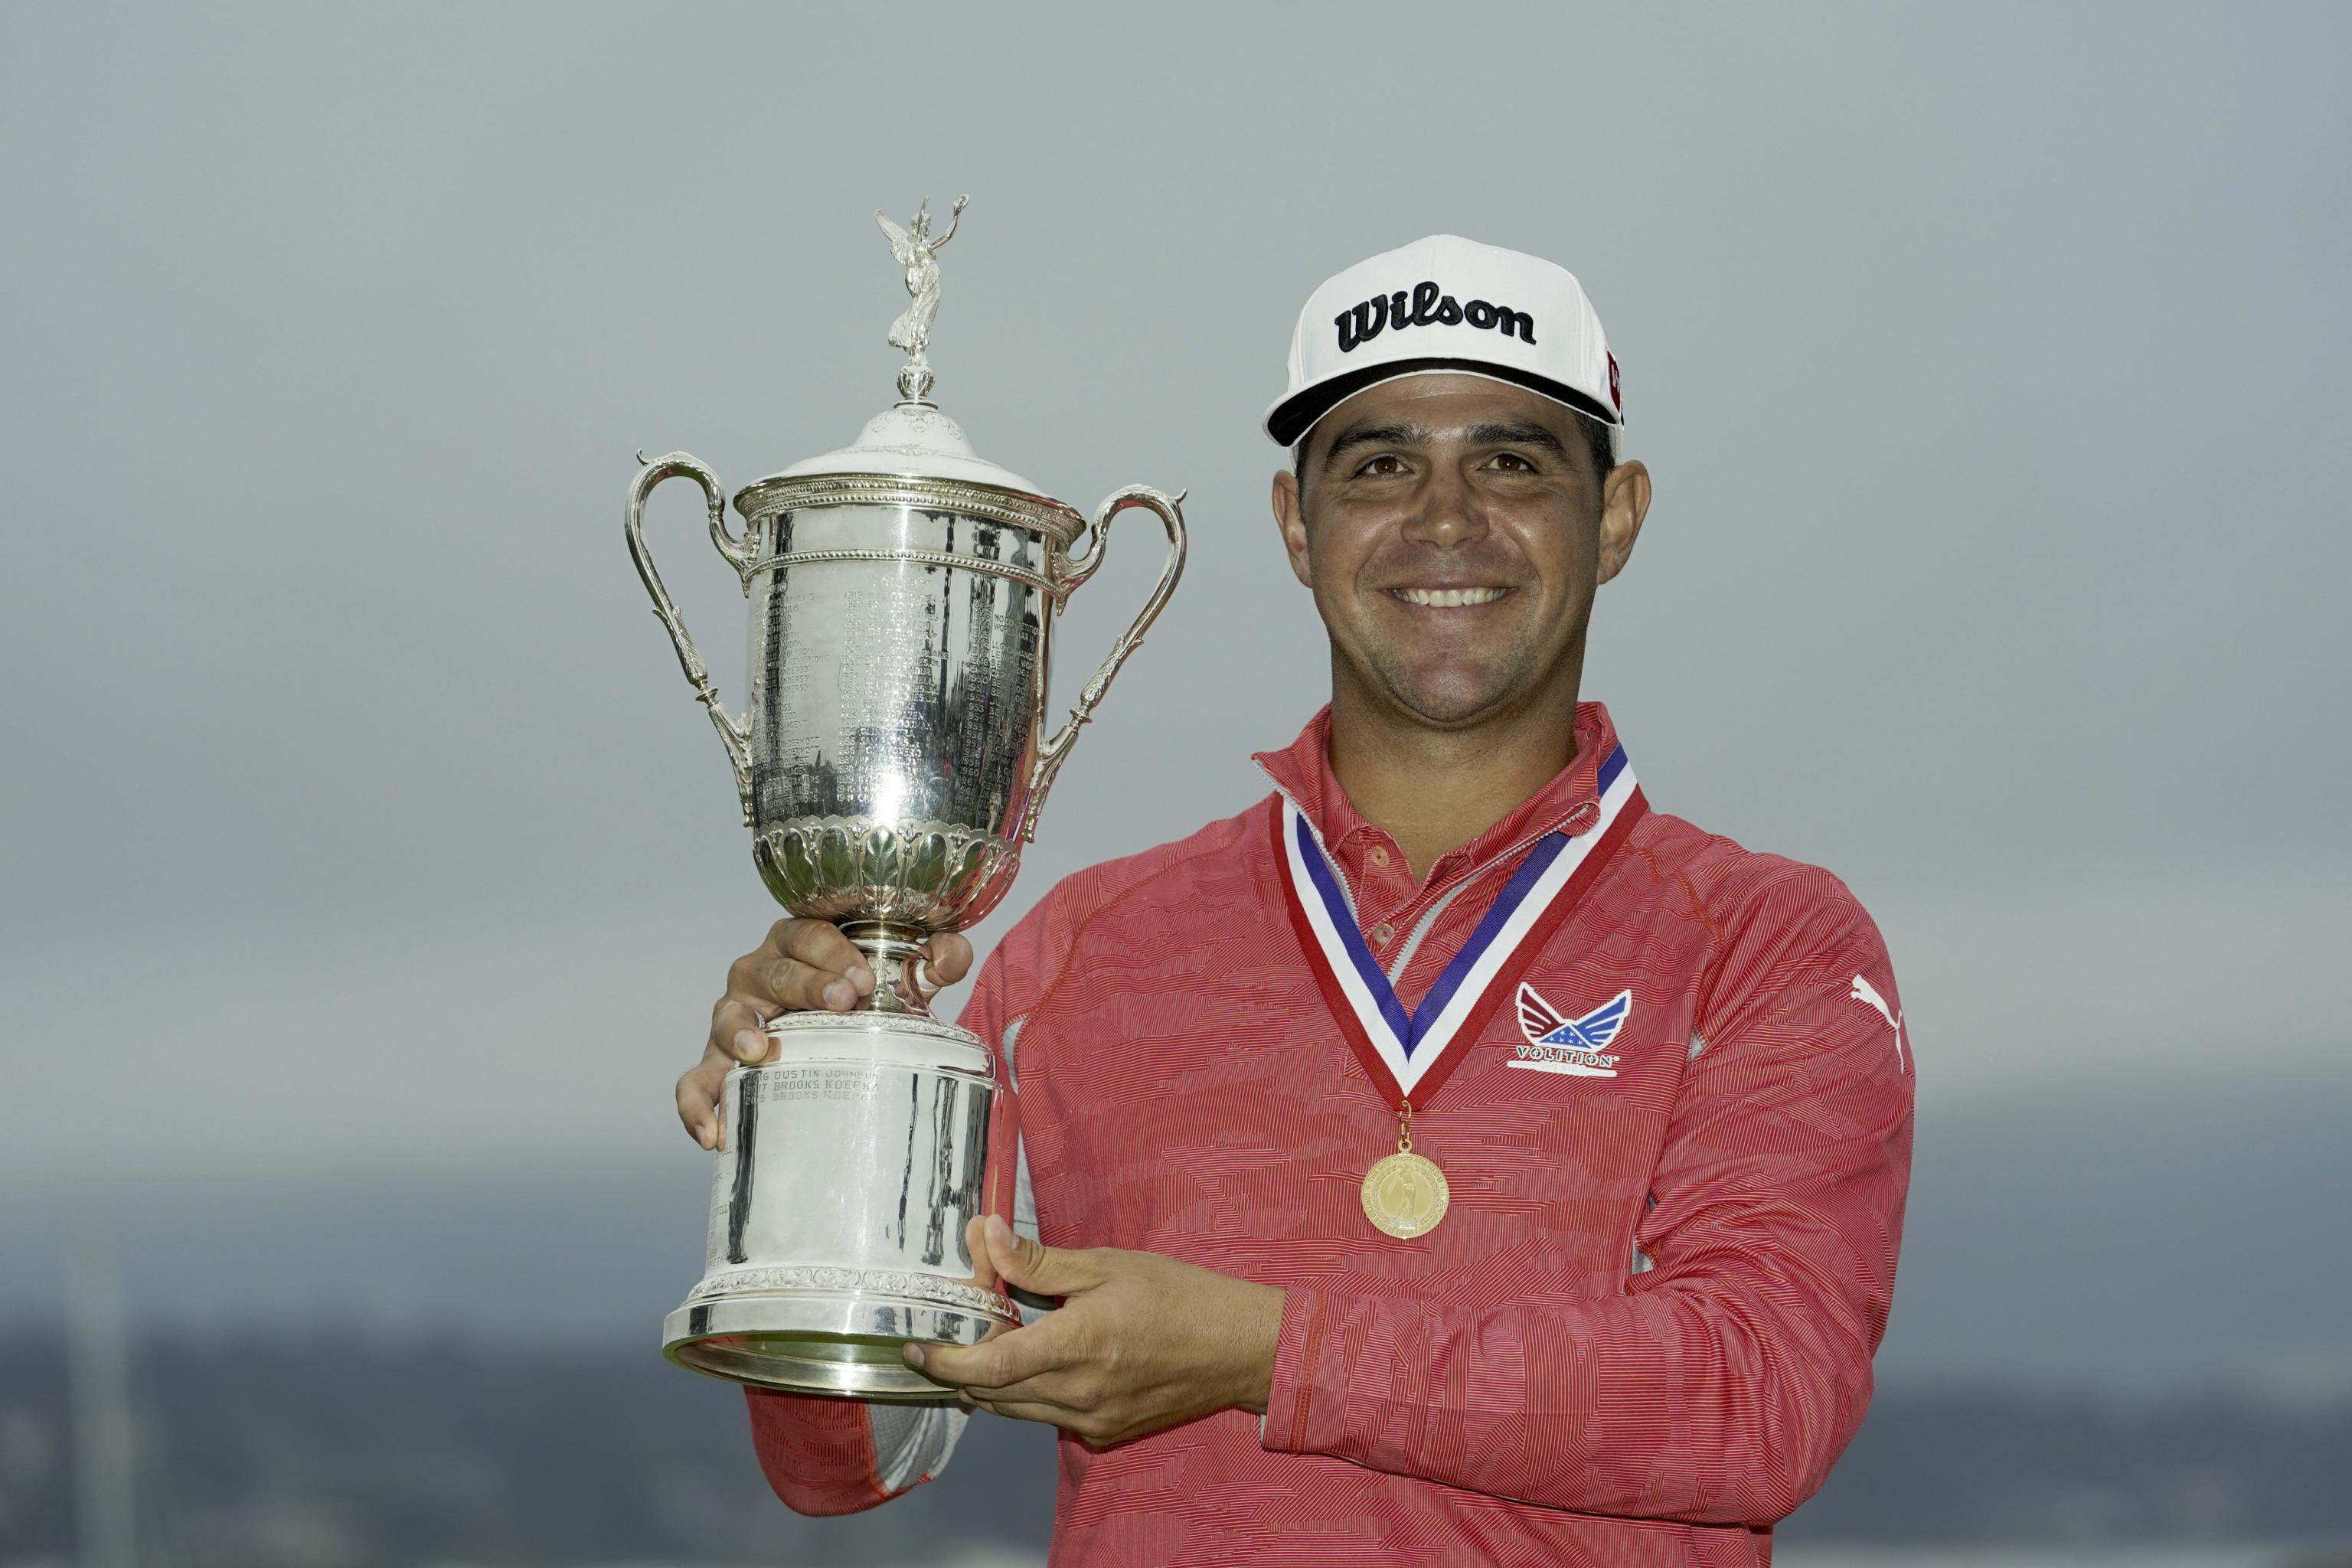 Us Open Golf Prize Money 2019 Final Leaderboard Total Purse And Payouts Bleacher Report Latest News Videos And Highlights